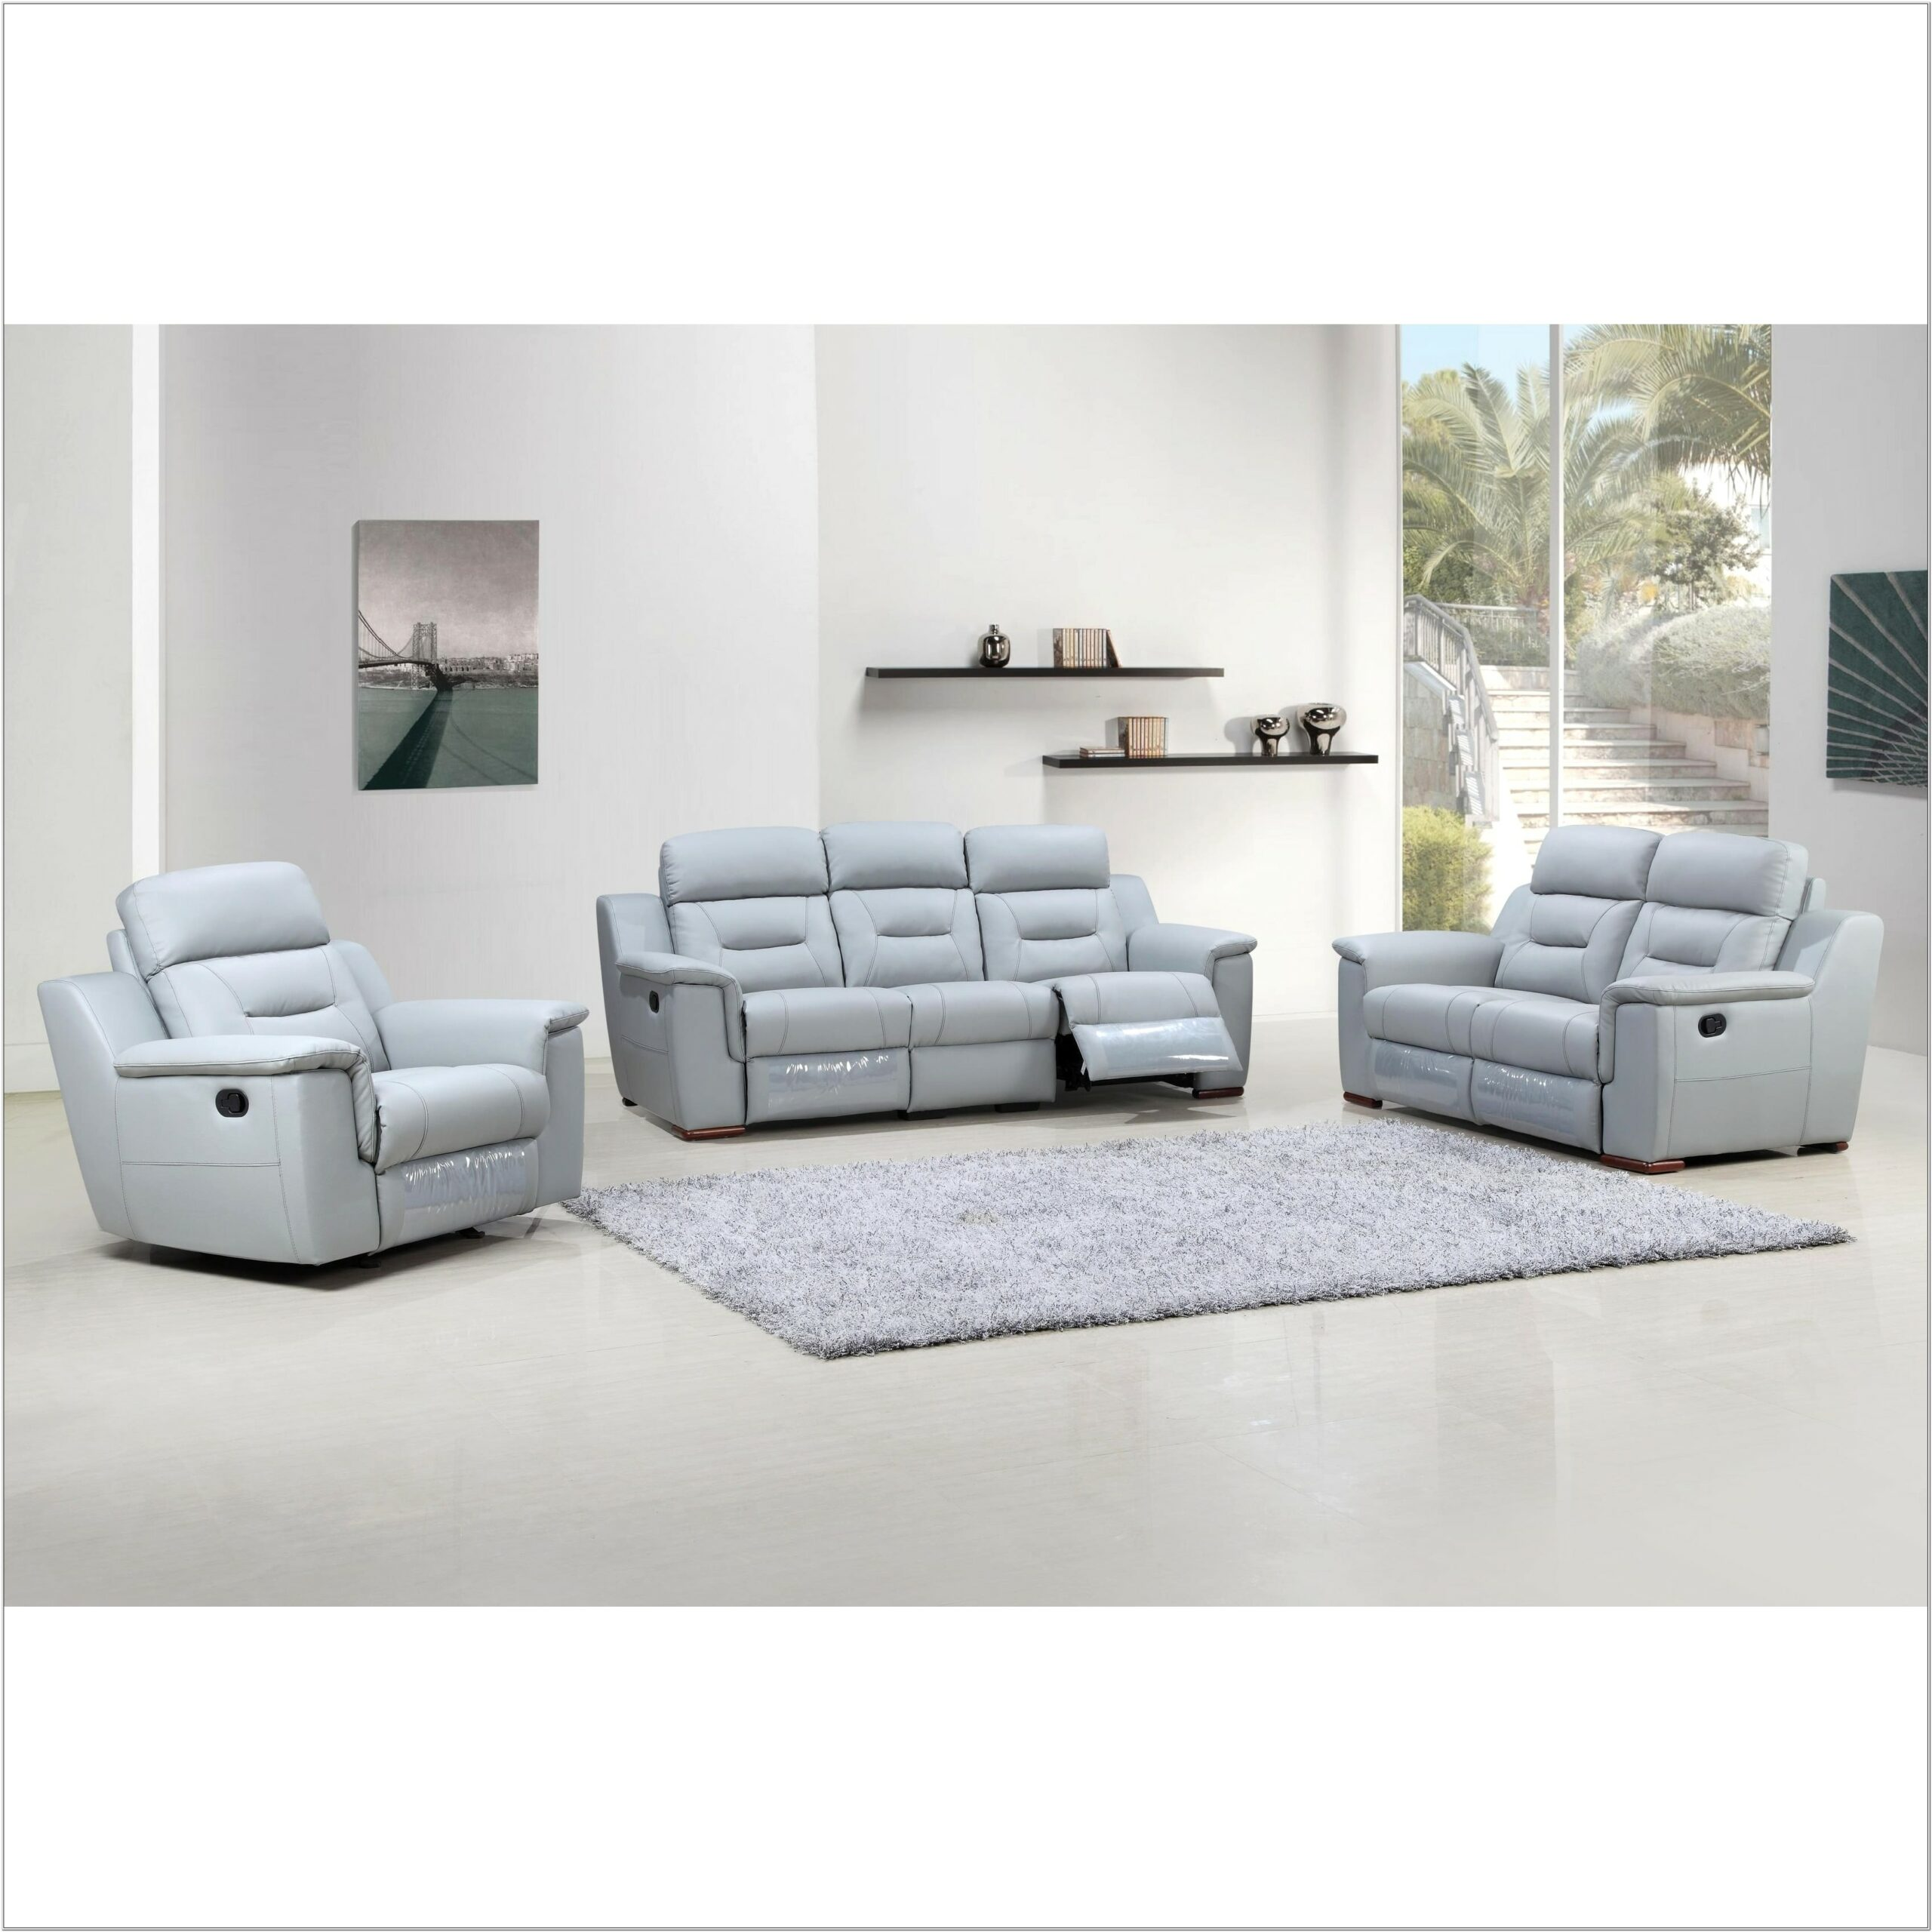 Leather 3 Piece Living Room Sofa Set